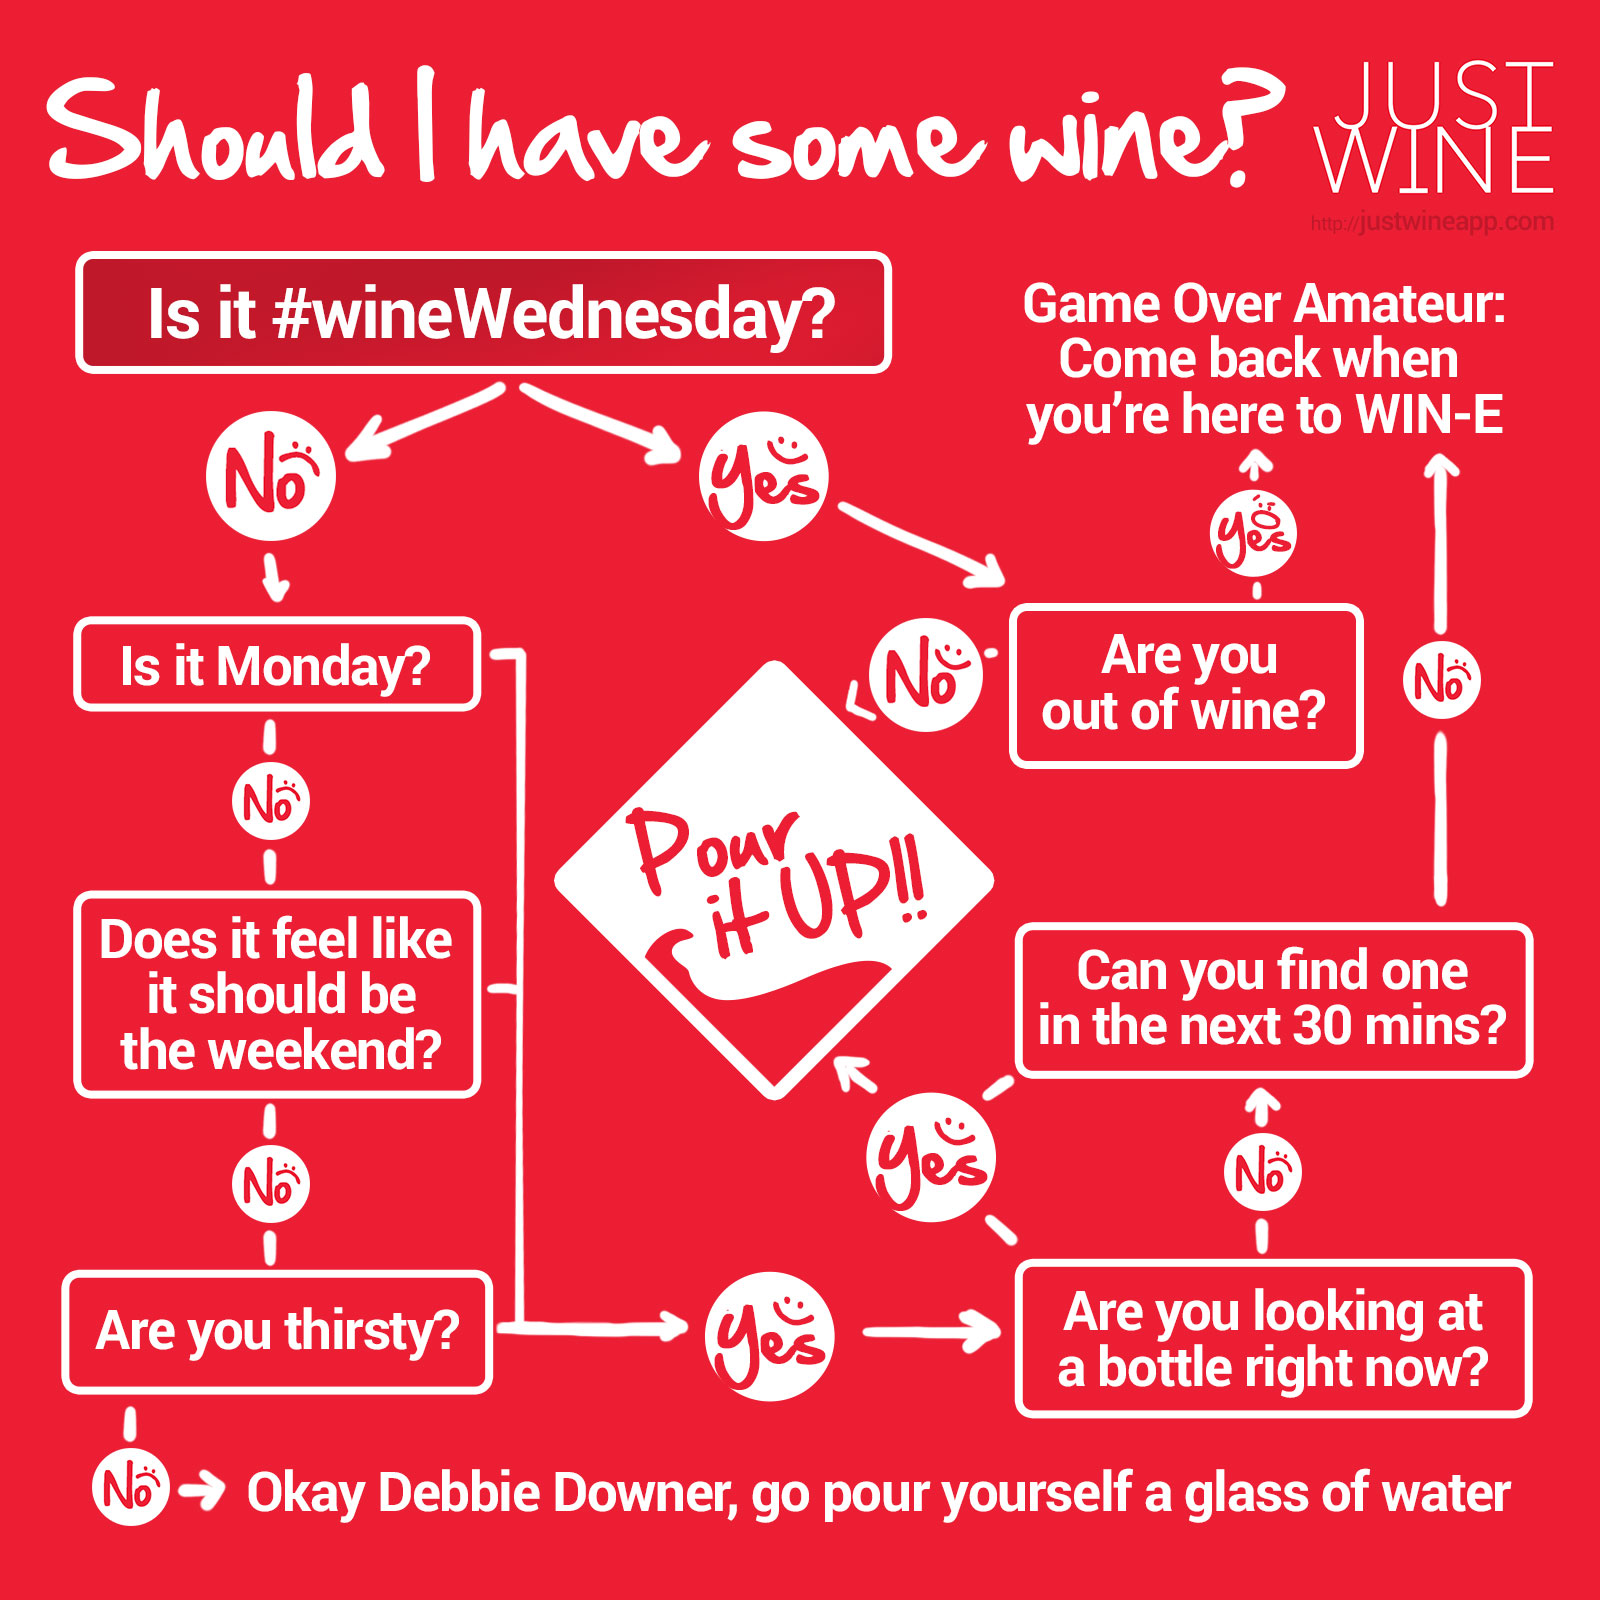 Quiz: Should I have some wine? |